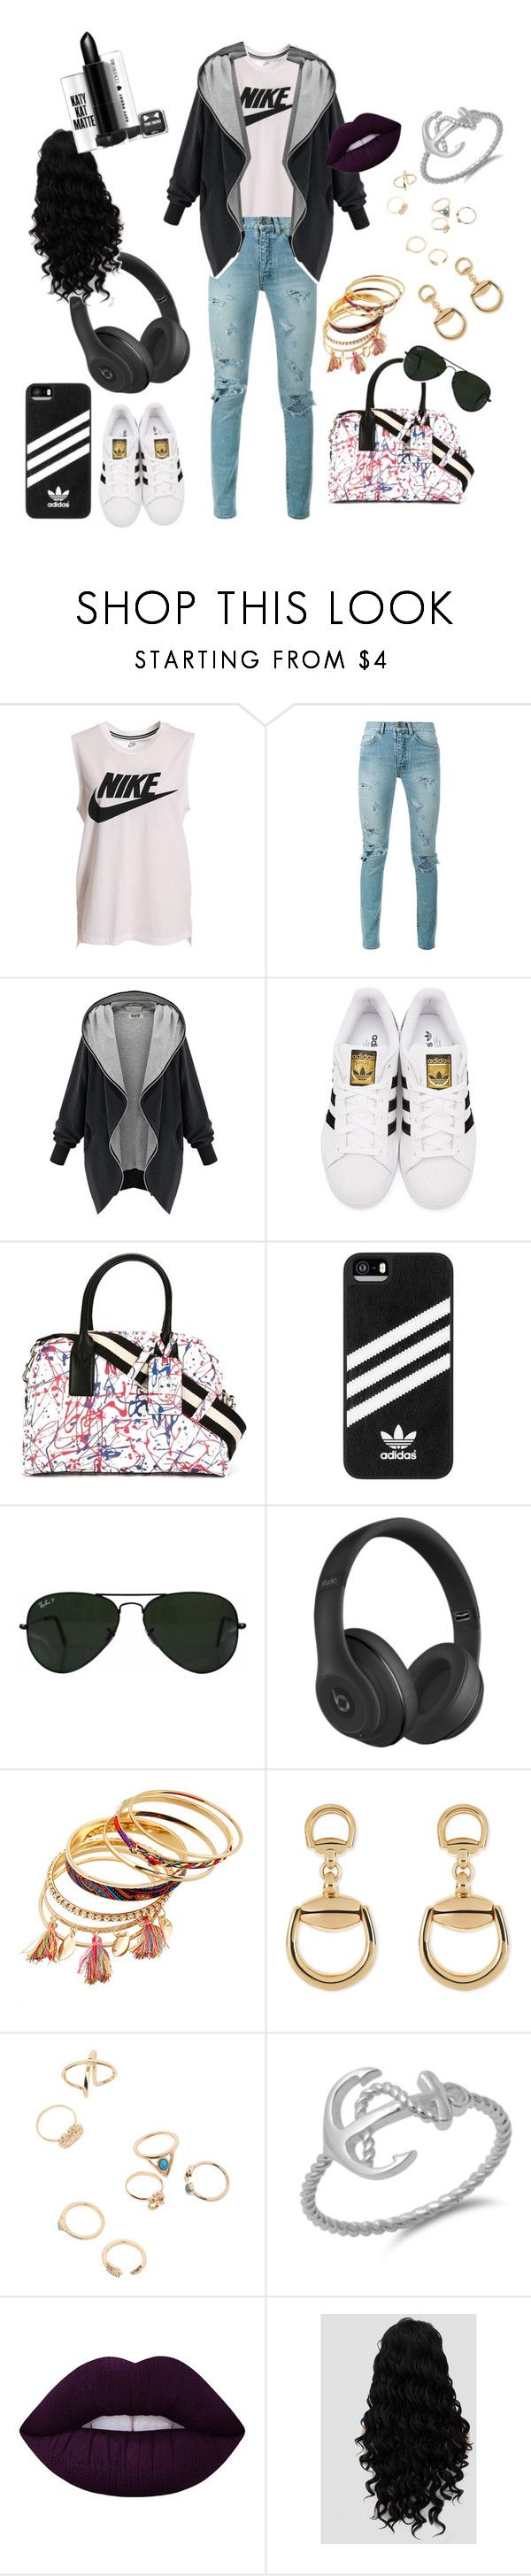 """Lip❤️"" by boombox14 ❤ liked on Polyvore featuring NIKE, Yves Saint Laurent, adidas Originals, Marc Jacobs, adidas, Ray-Ban, Beats by Dr. Dre, Gucci and Lime Crime"